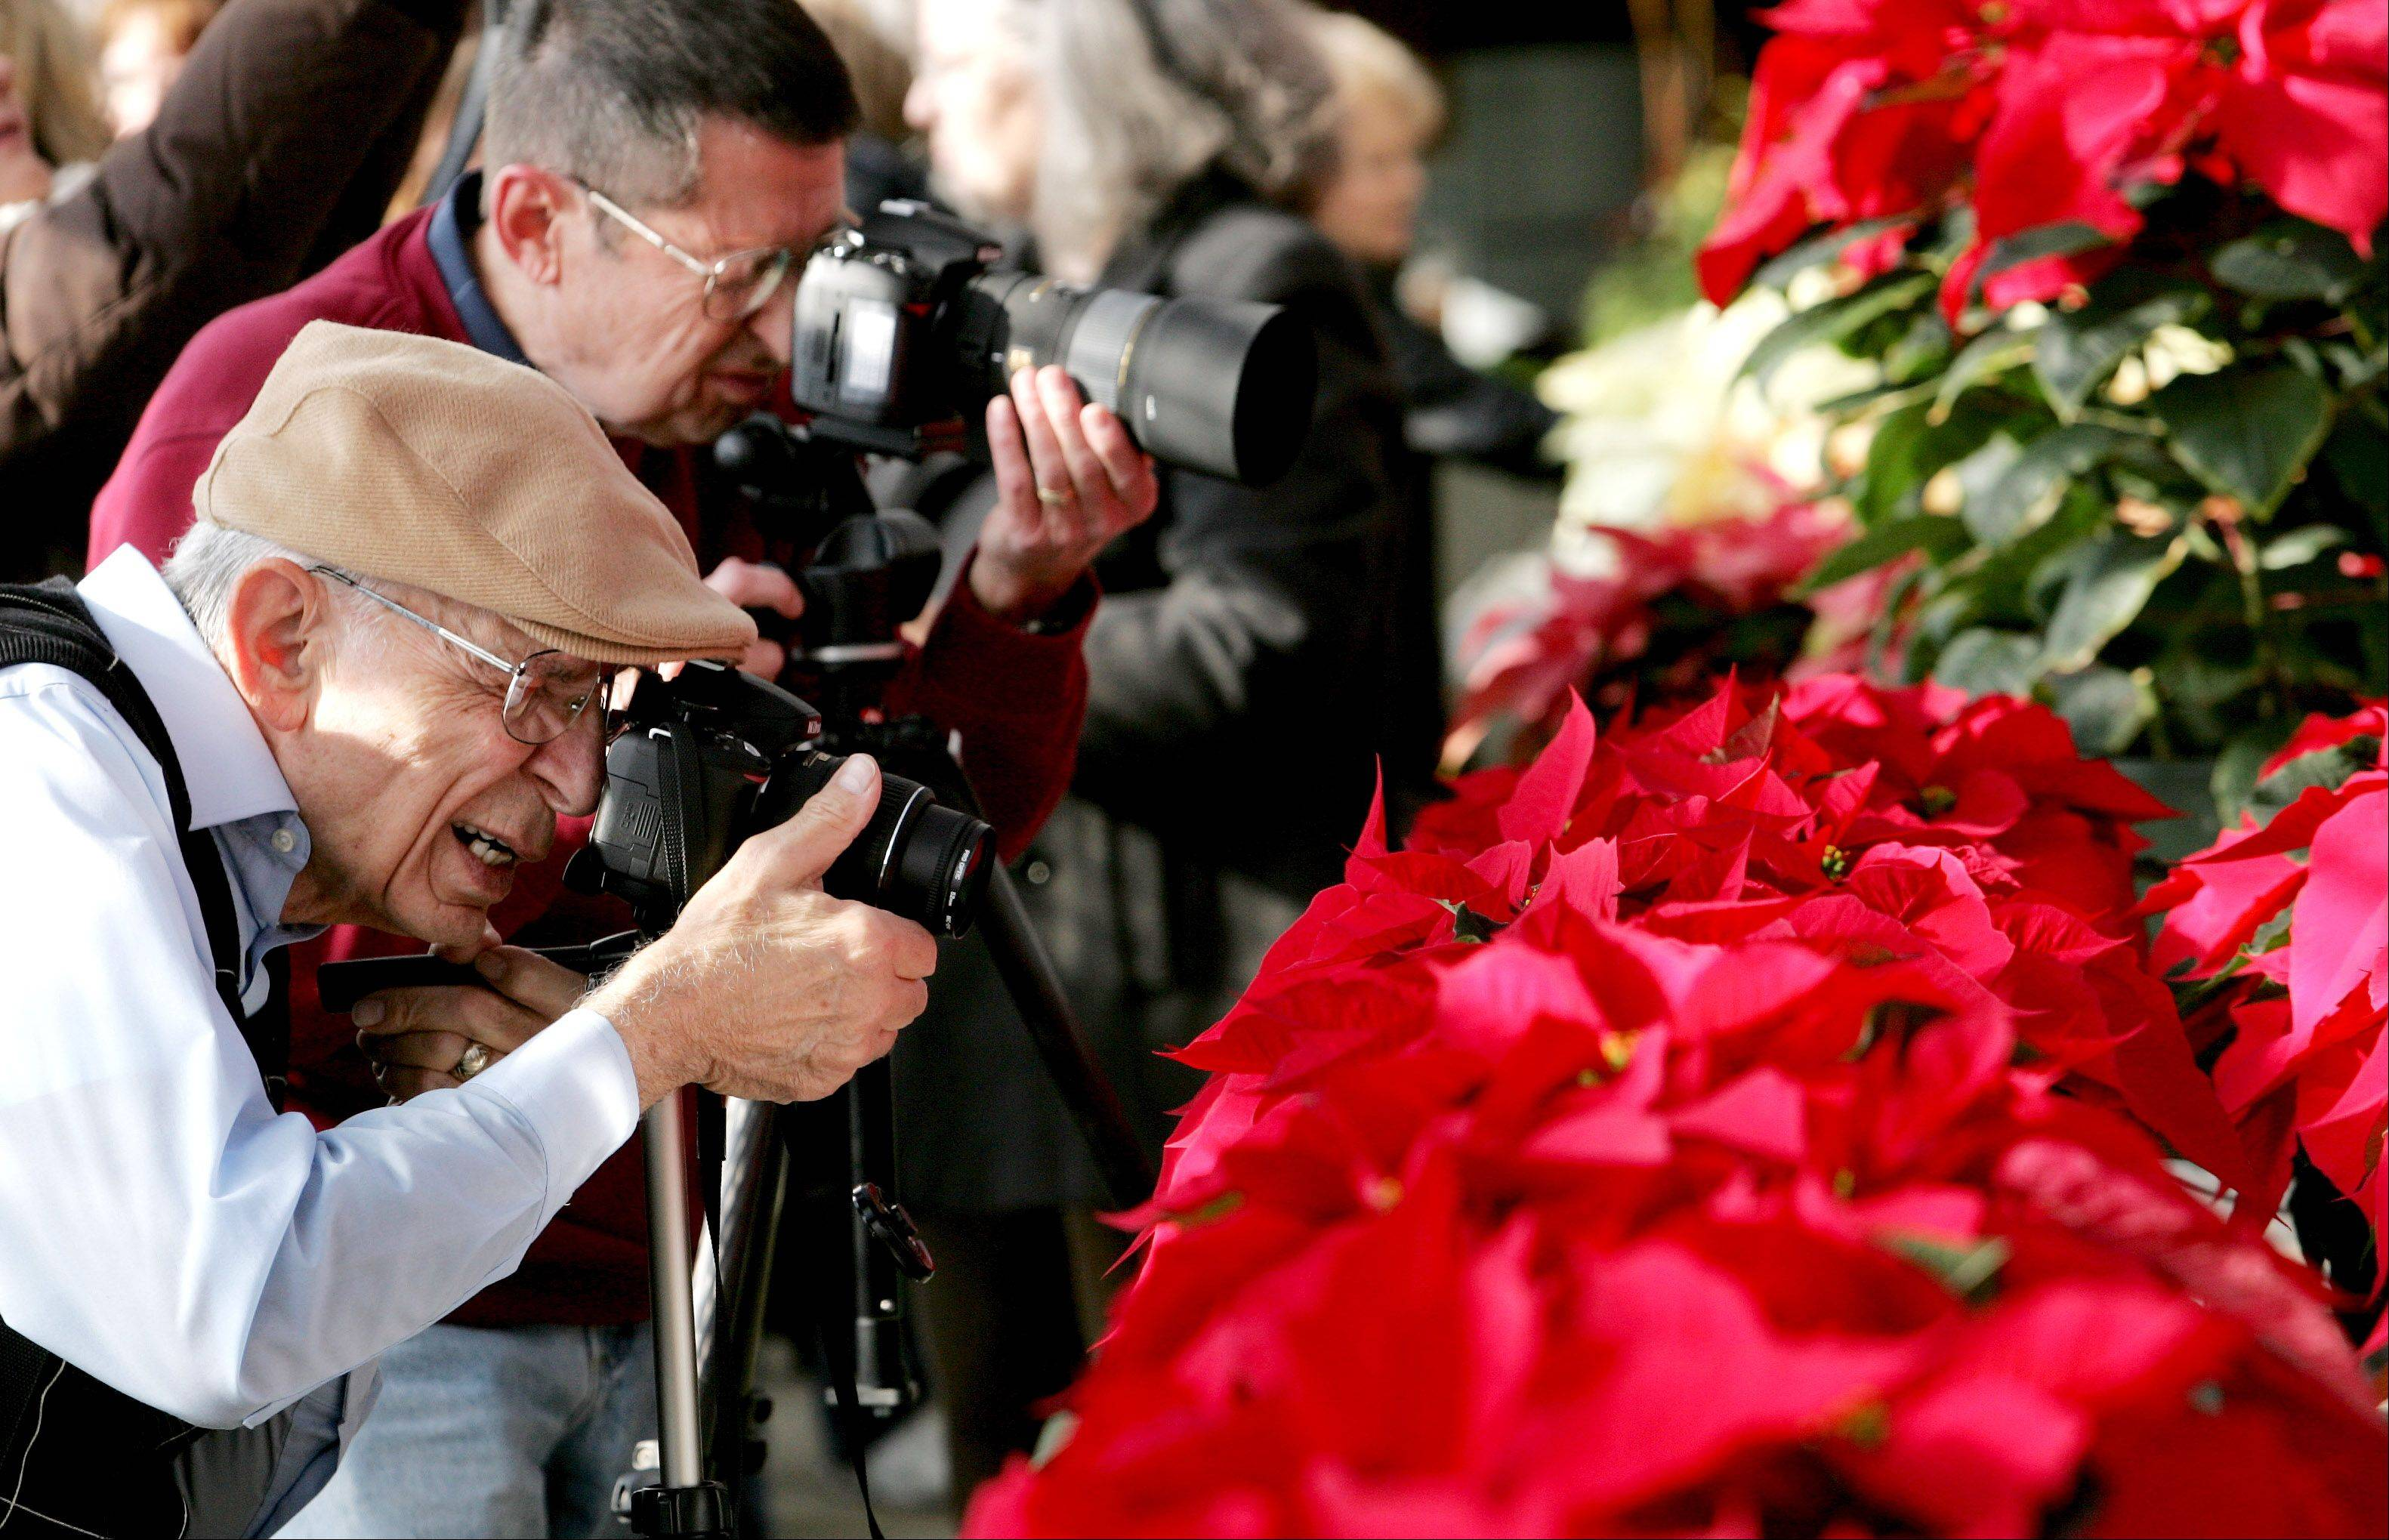 Rock Assise, left, and Tom Walter, right, both members of a camera club in Crest Hill, work on getting some close-ups of the prestige red poinsettia, during their visit to the annual Shades of Crimson display in the greenhouse at Cantigny Park in Wheaton on Tuesday.